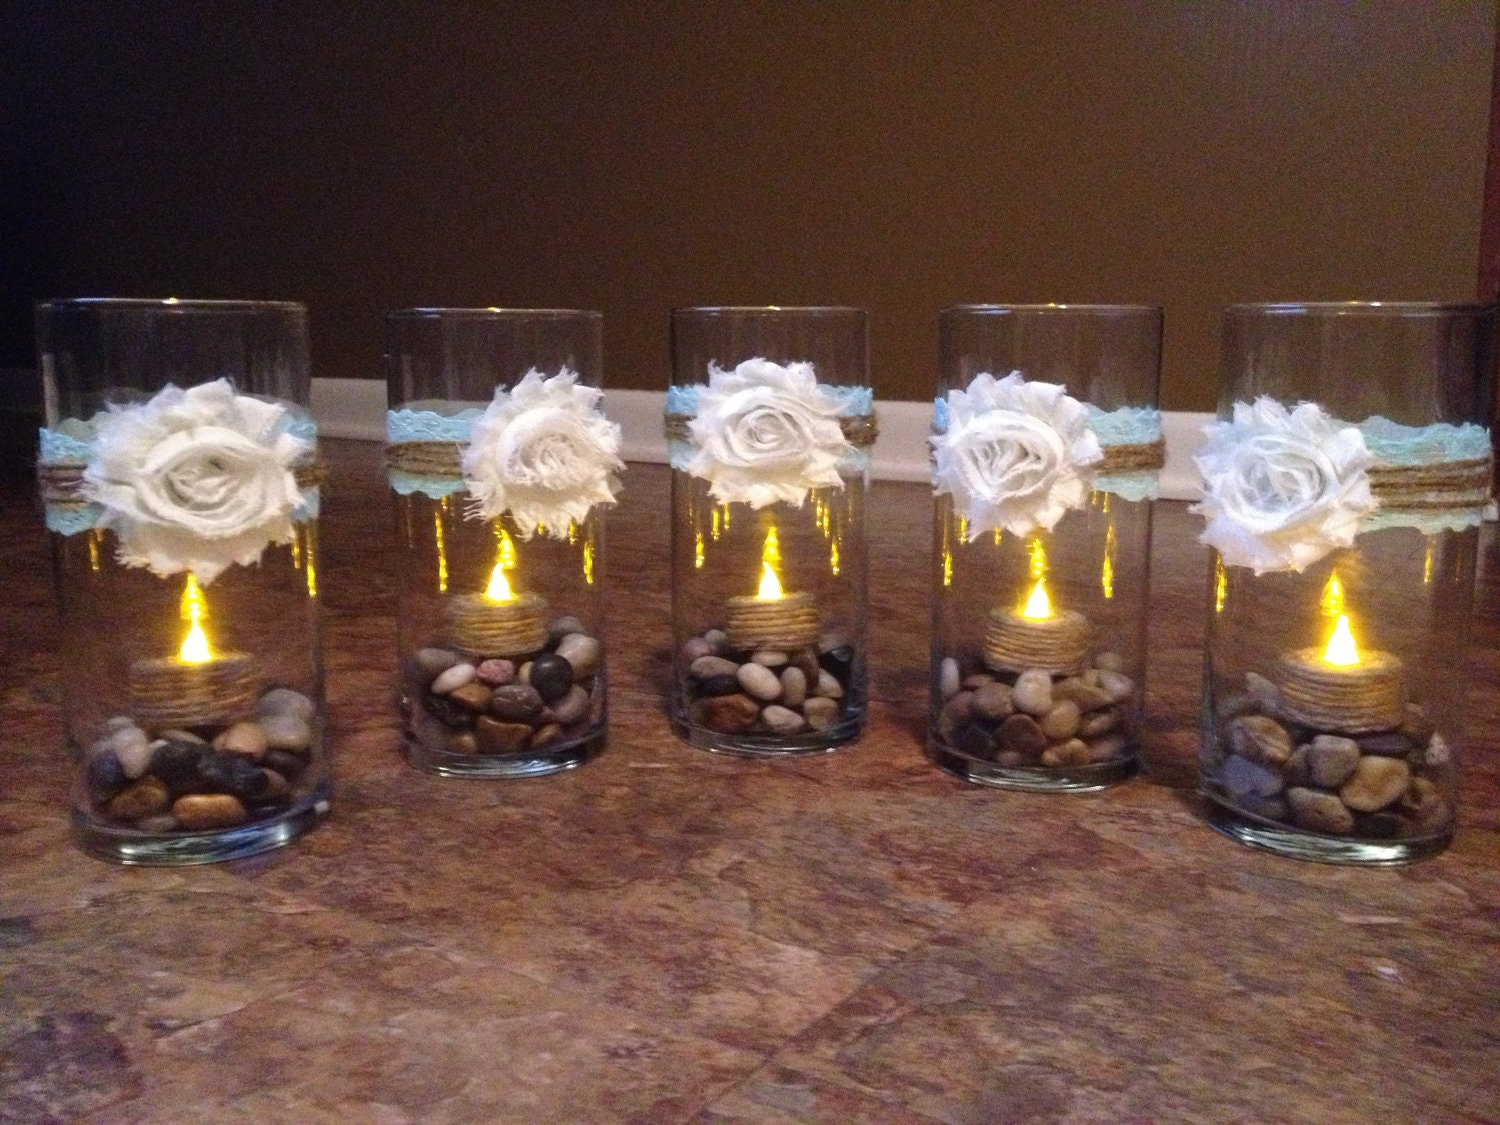 Vase centerpieces with rocks and led tea lights